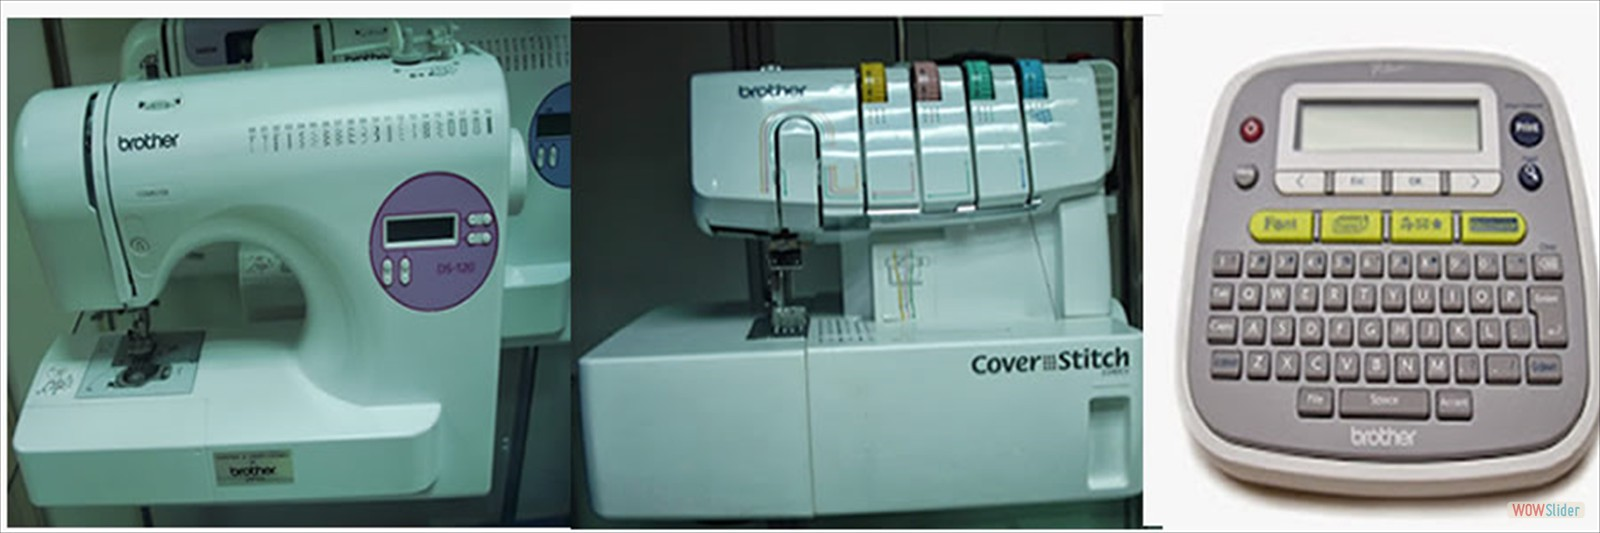 BROTHER  DS 120 ZIG ZAG, BROTHER 2340CV COVER STITCH MACHINE AND BROTHER LABLEL PRINTER  P-touch D200